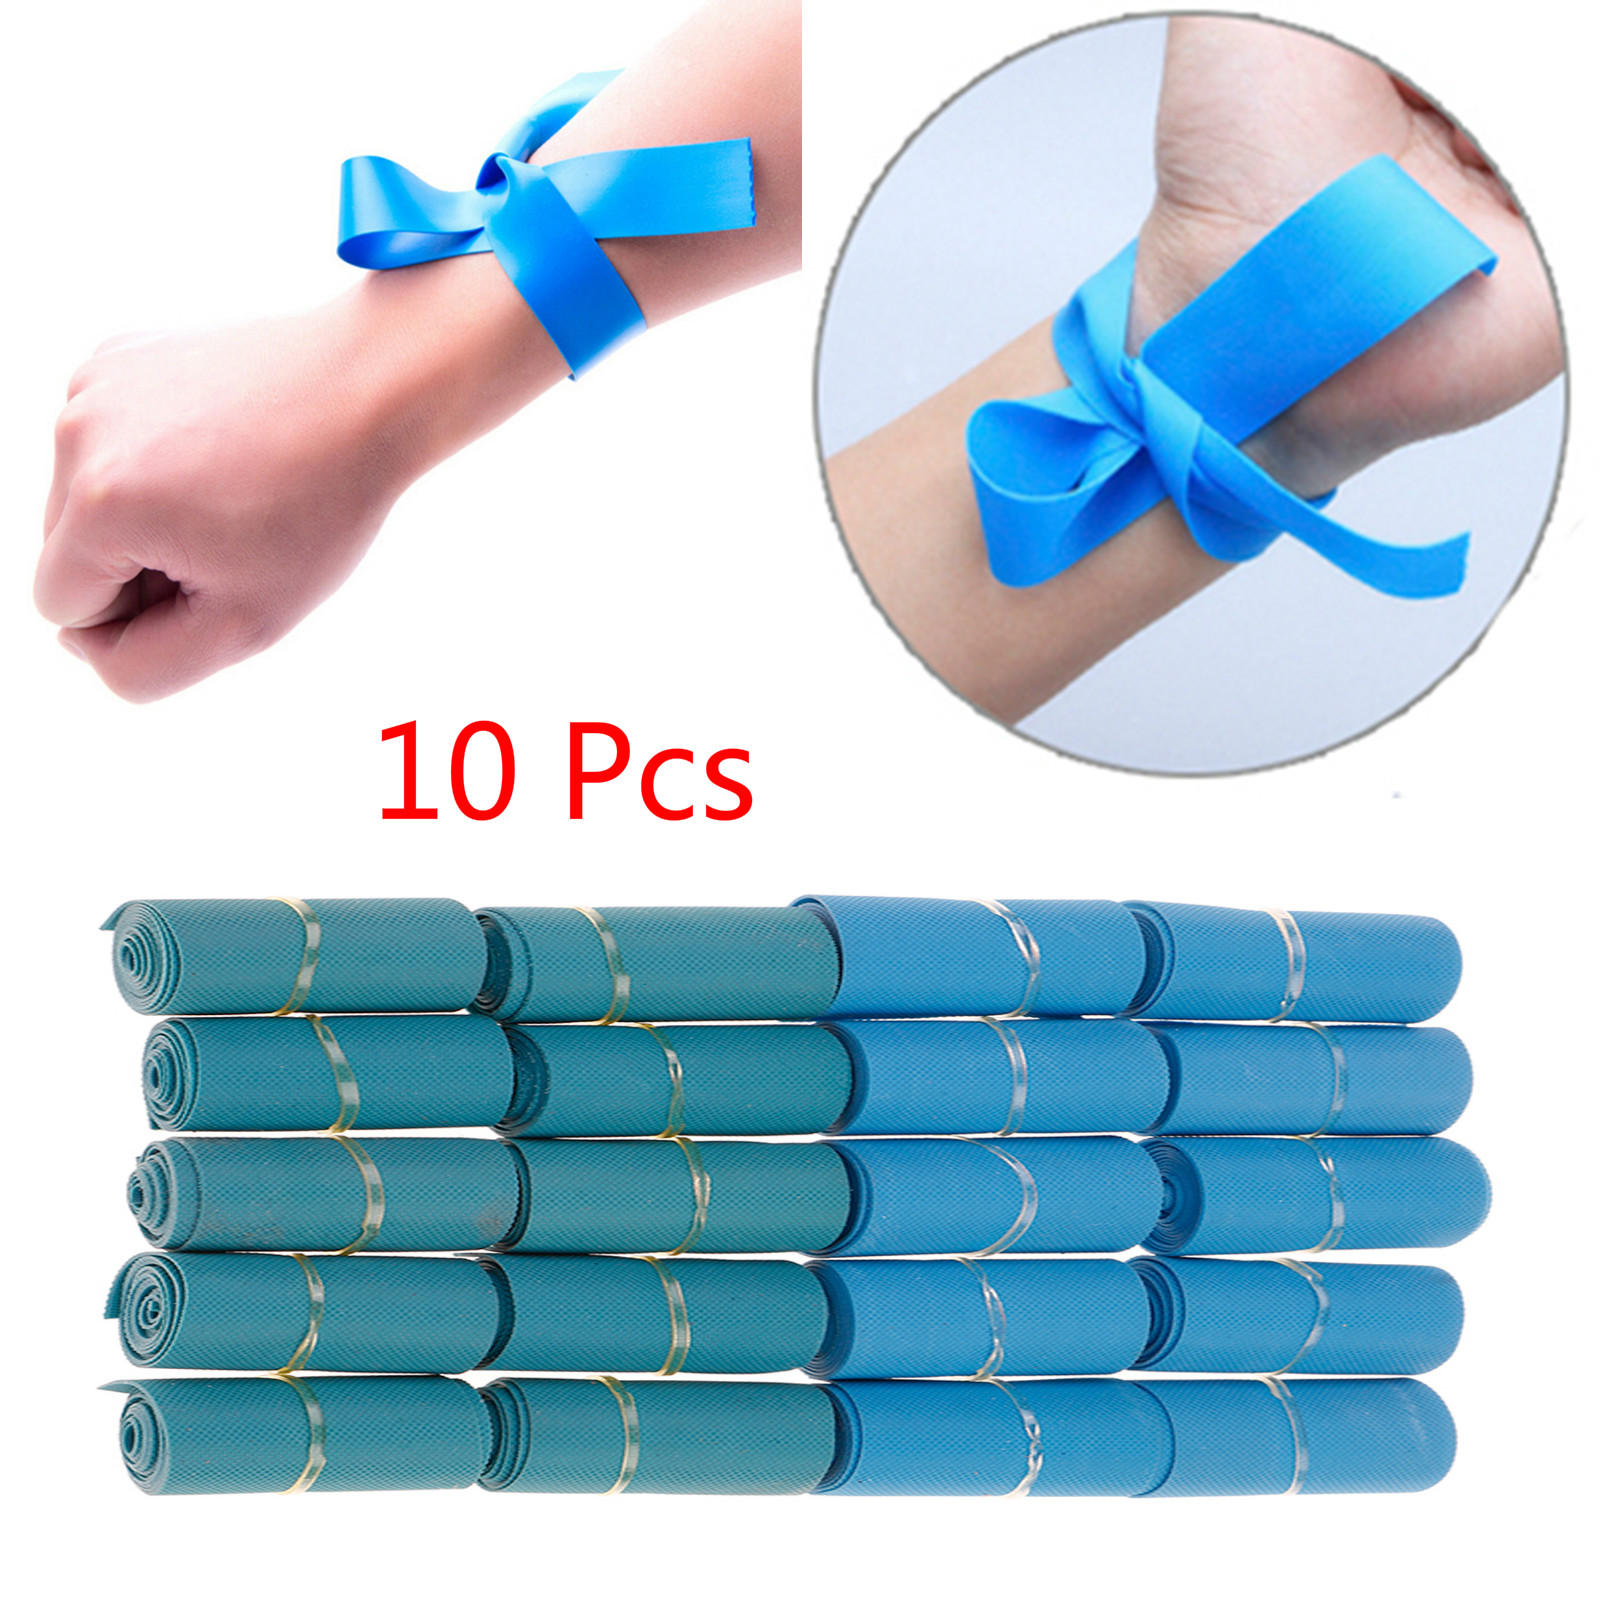 10pcs Outdoor Emergency Necessities First Aid Supplies First Aid Kit Latex Tourniquet Medical Emergency Tourniquet Tourniquet